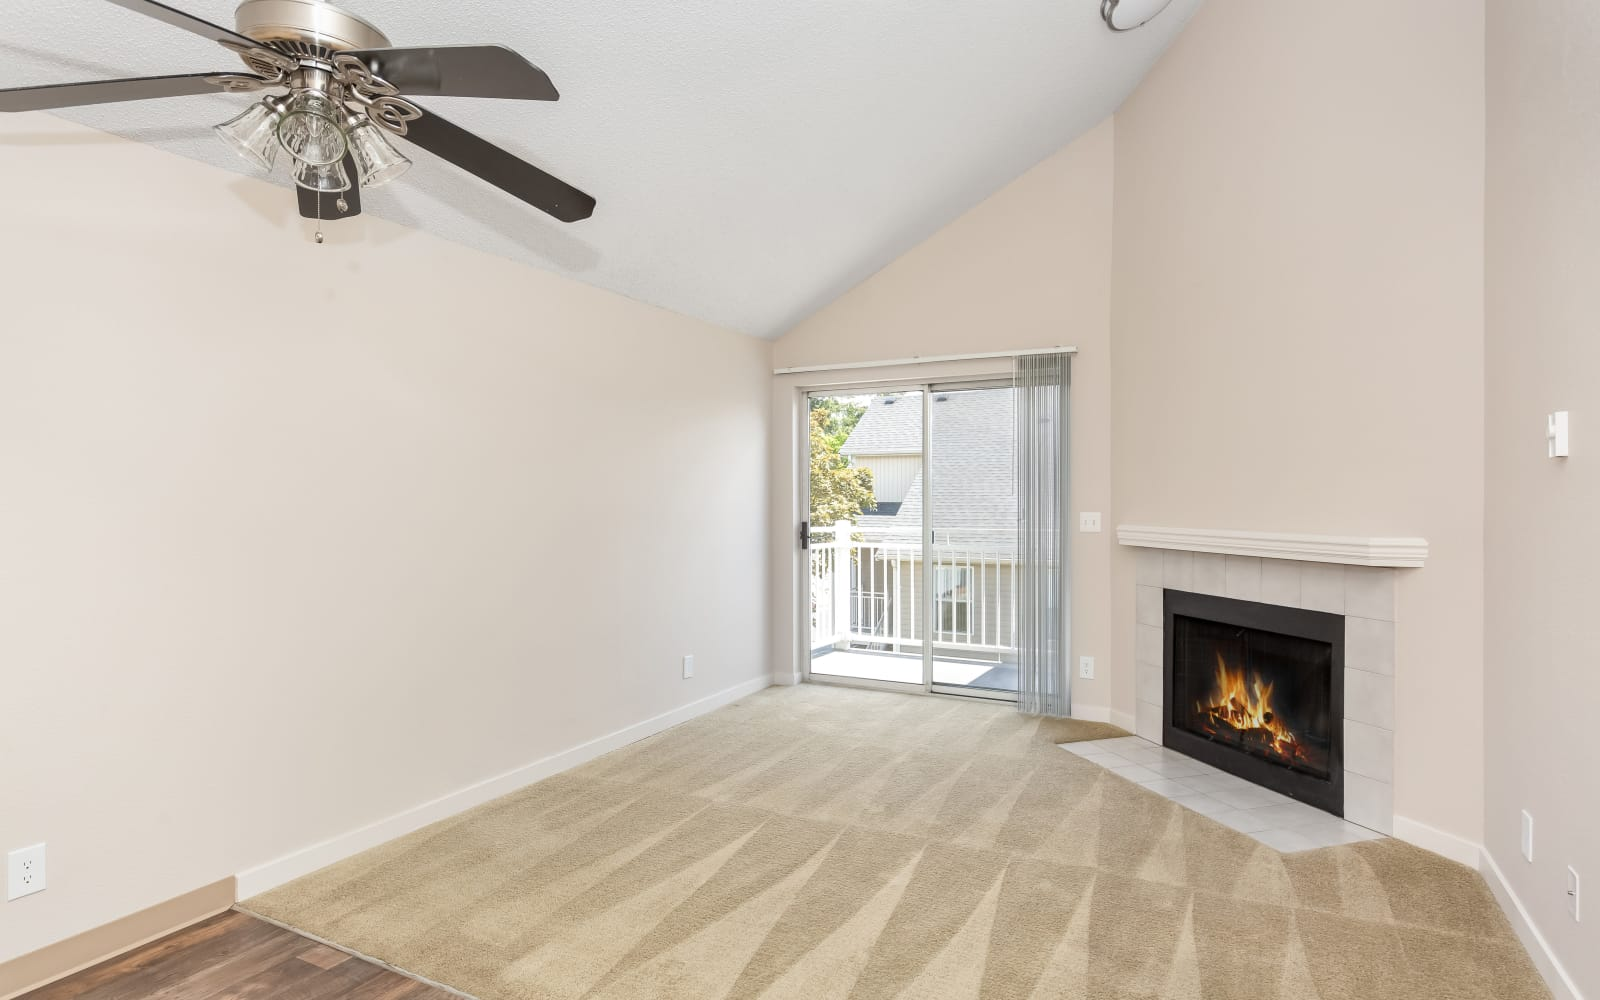 Spacious room with ceiling fan at Alaire Apartments in Renton, Washington